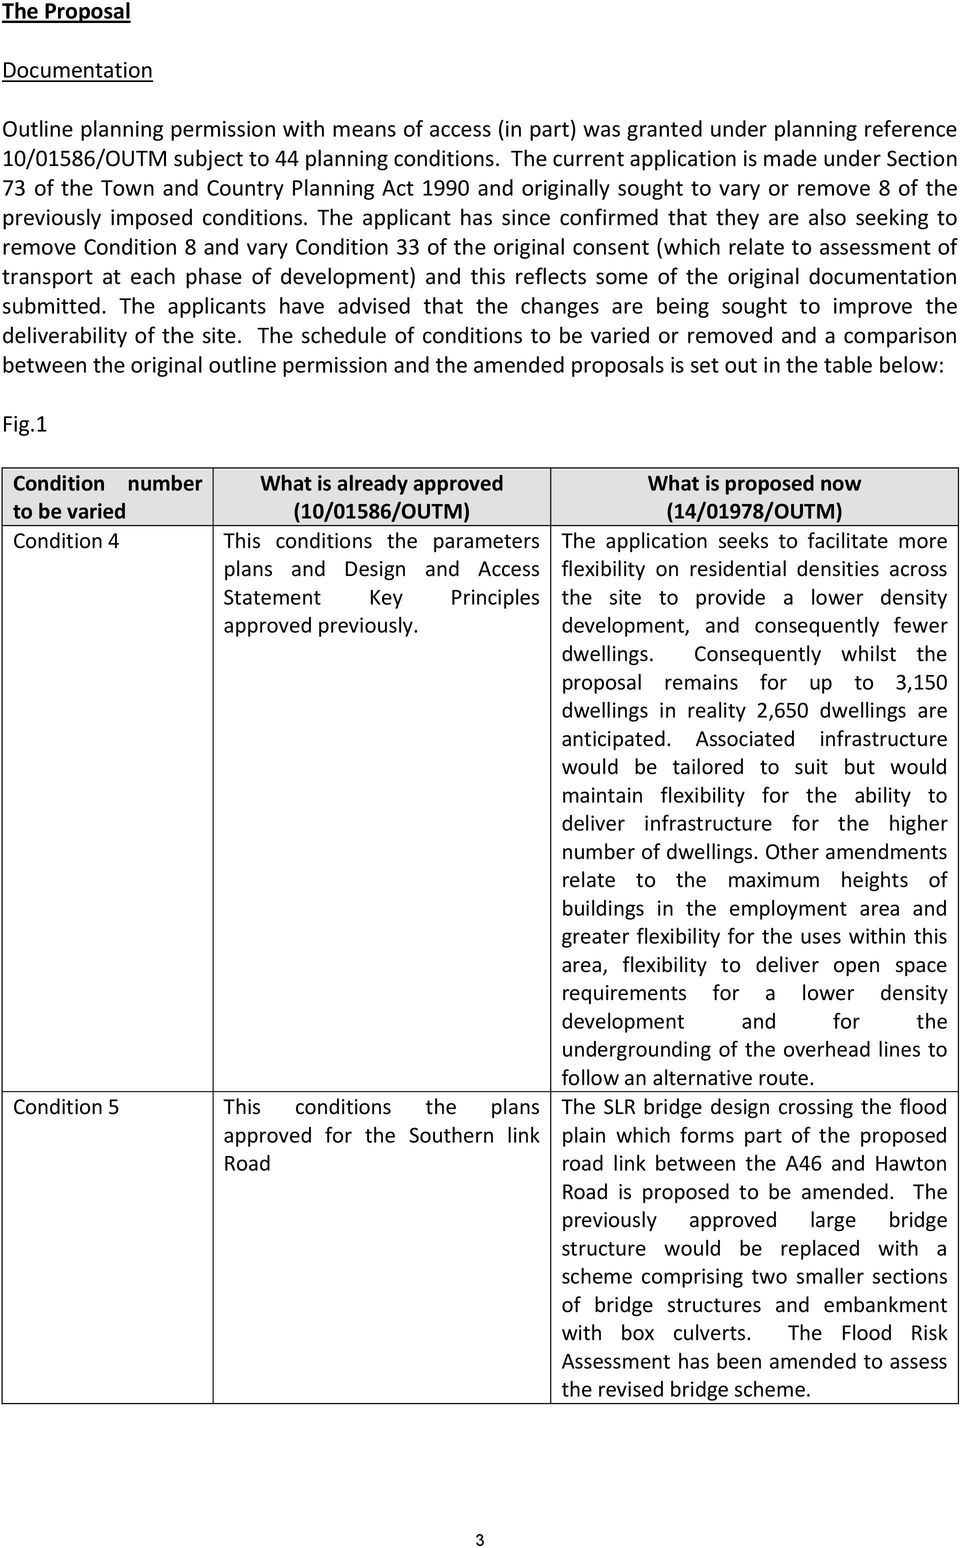 The applicant has since confirmed that they are also seeking to remove Condition 8 and vary Condition 33 of the original consent (which relate to assessment of transport at each phase of development)